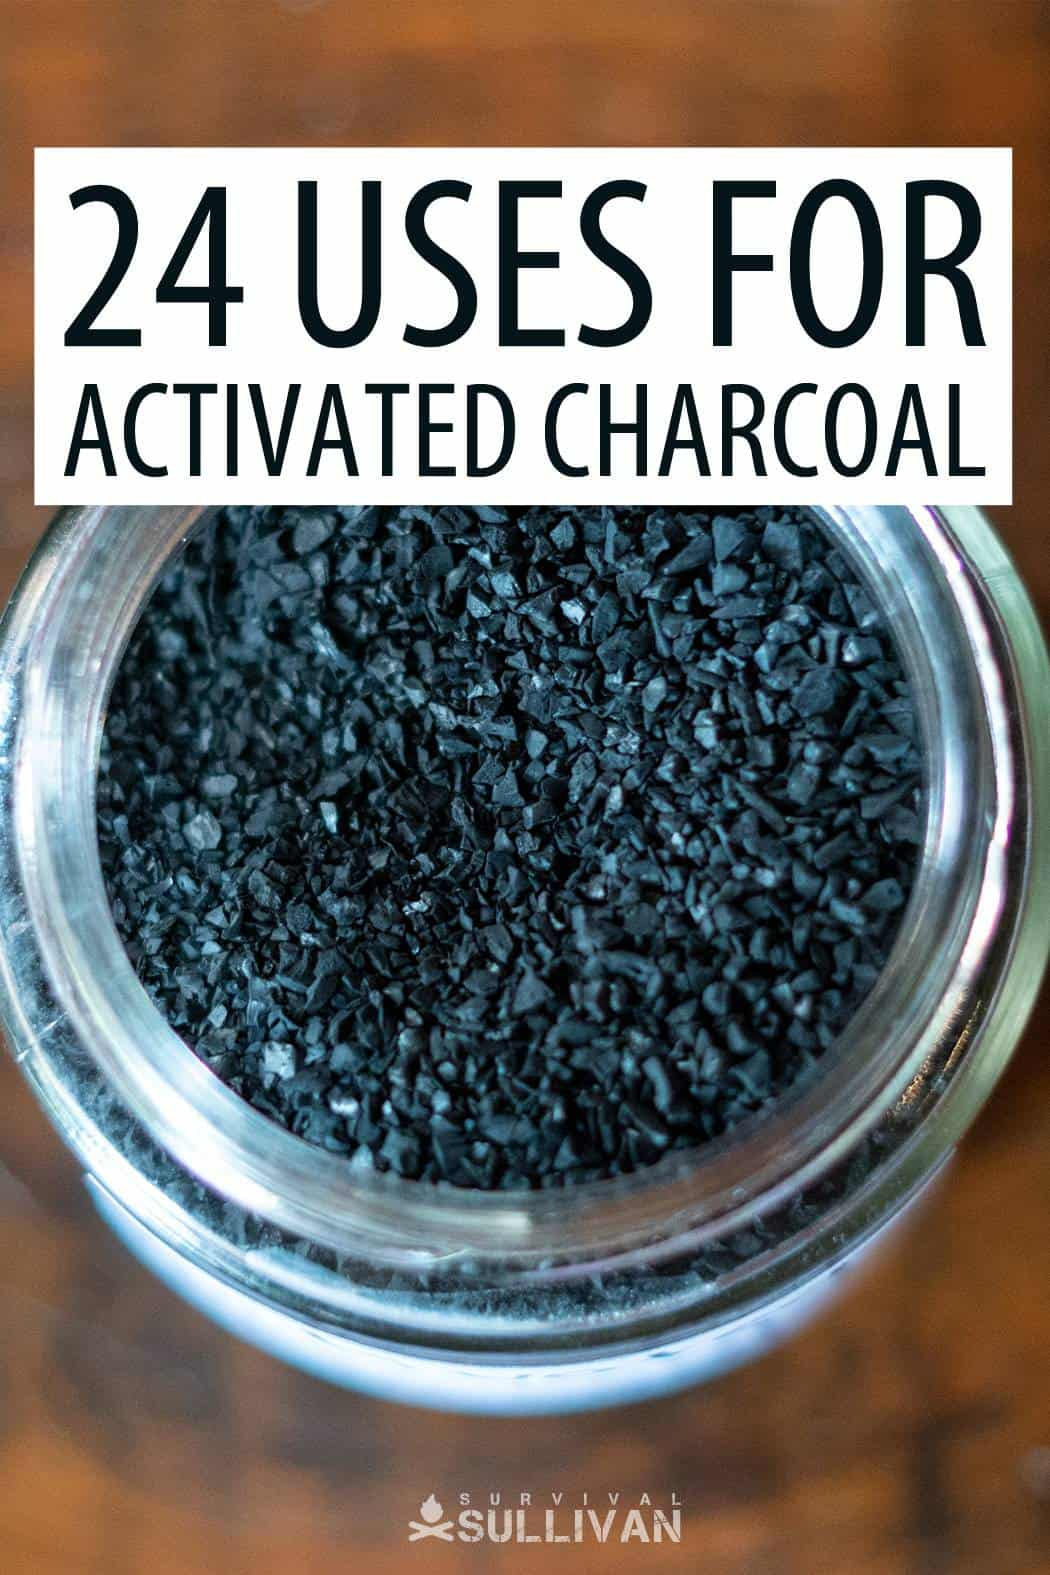 activated charcoal uses Pinterest image